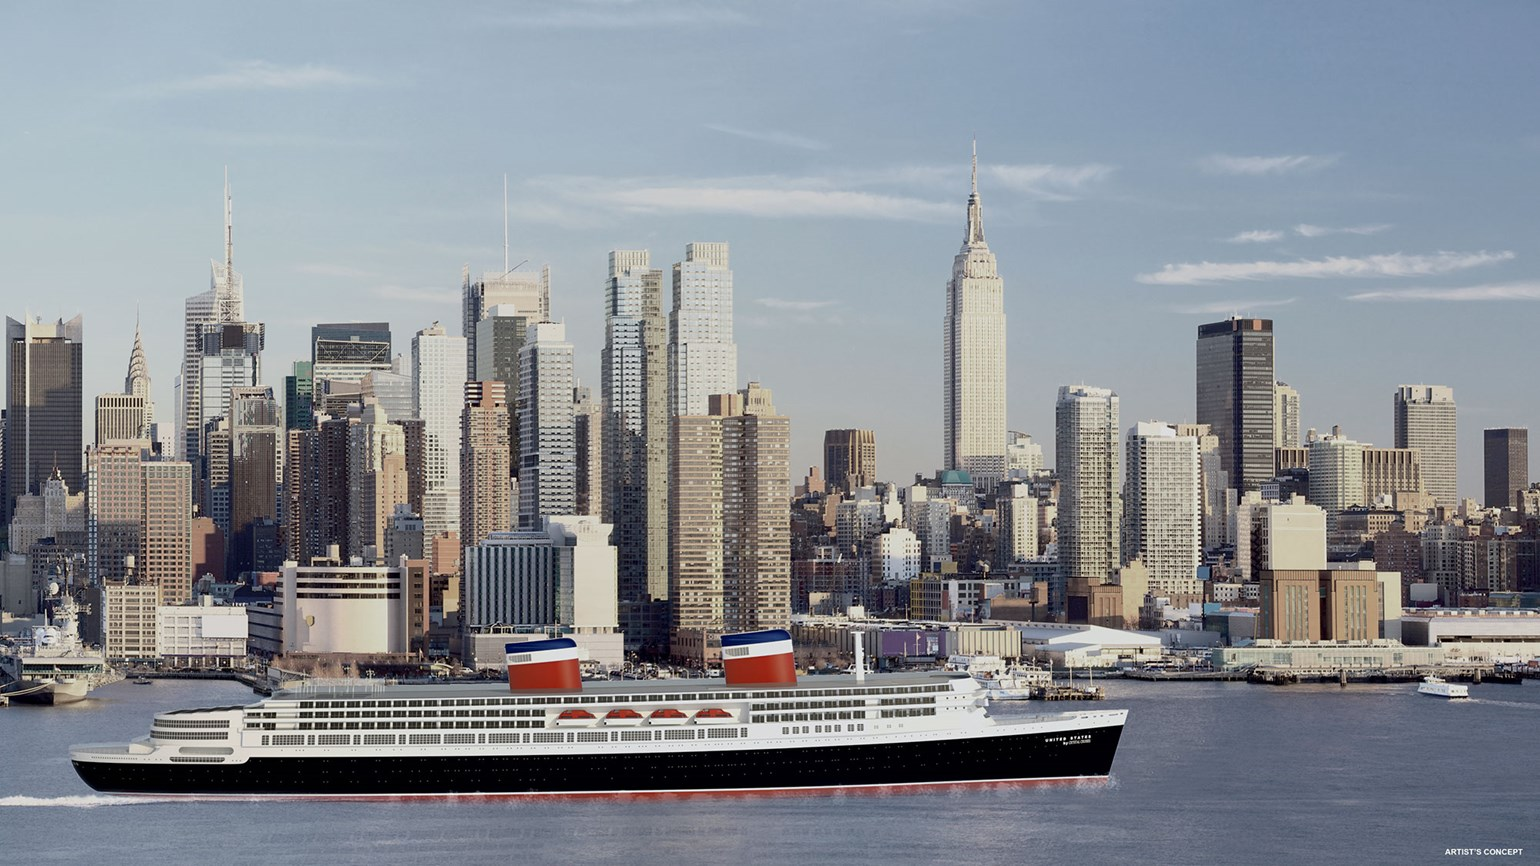 For the SS United States, an arduous voyage ahead